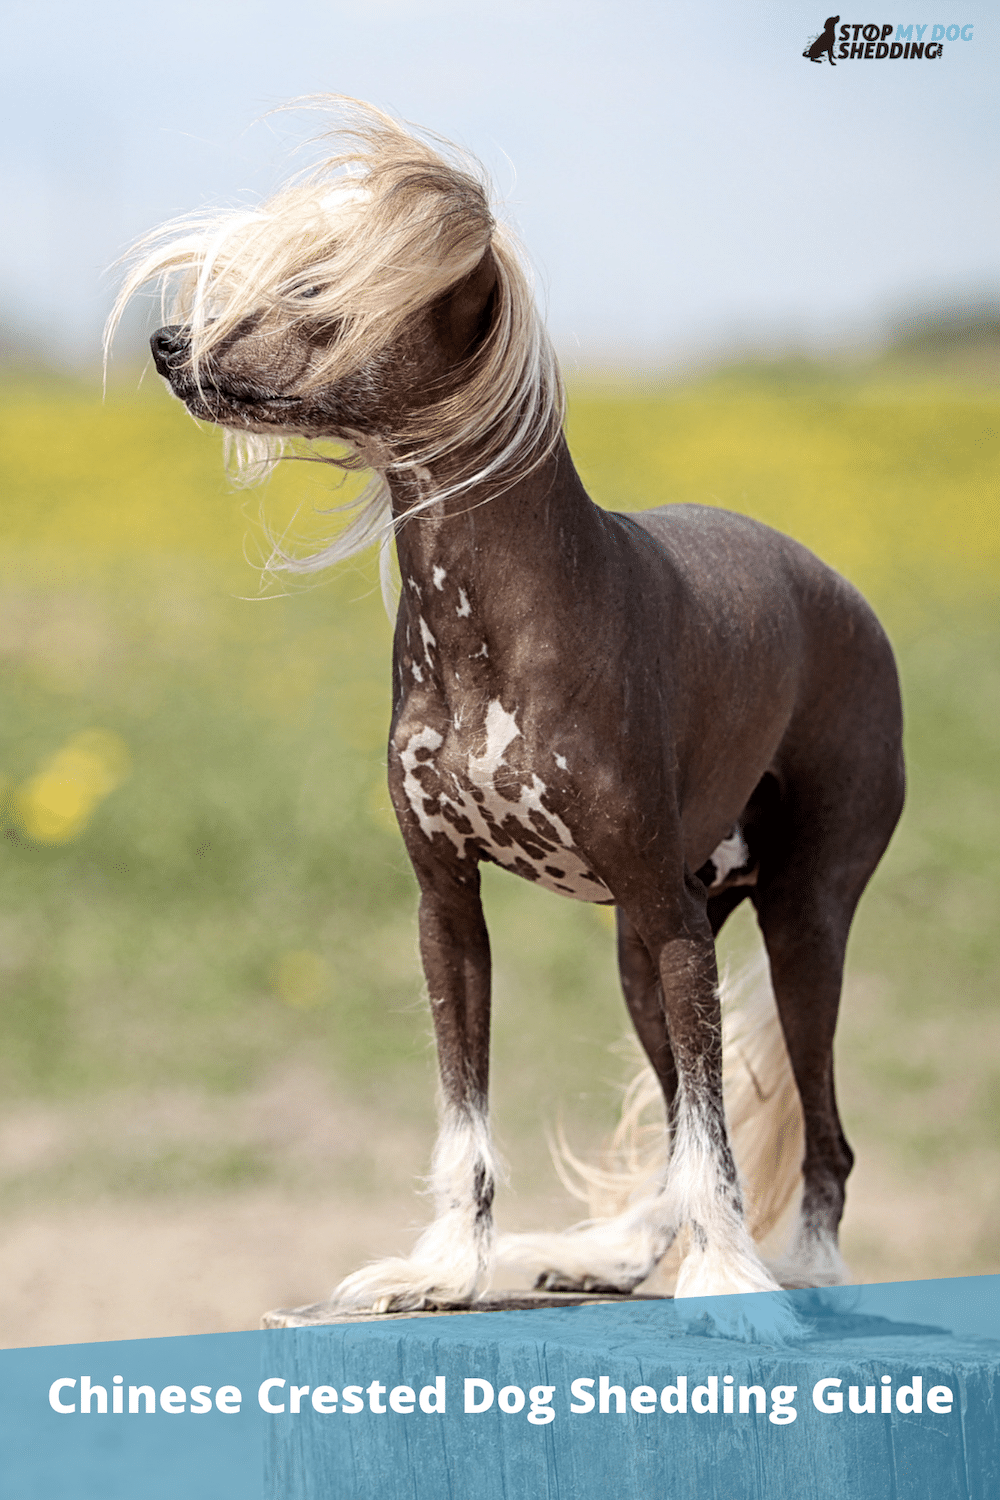 Do Chinese Crested Dogs Shed?